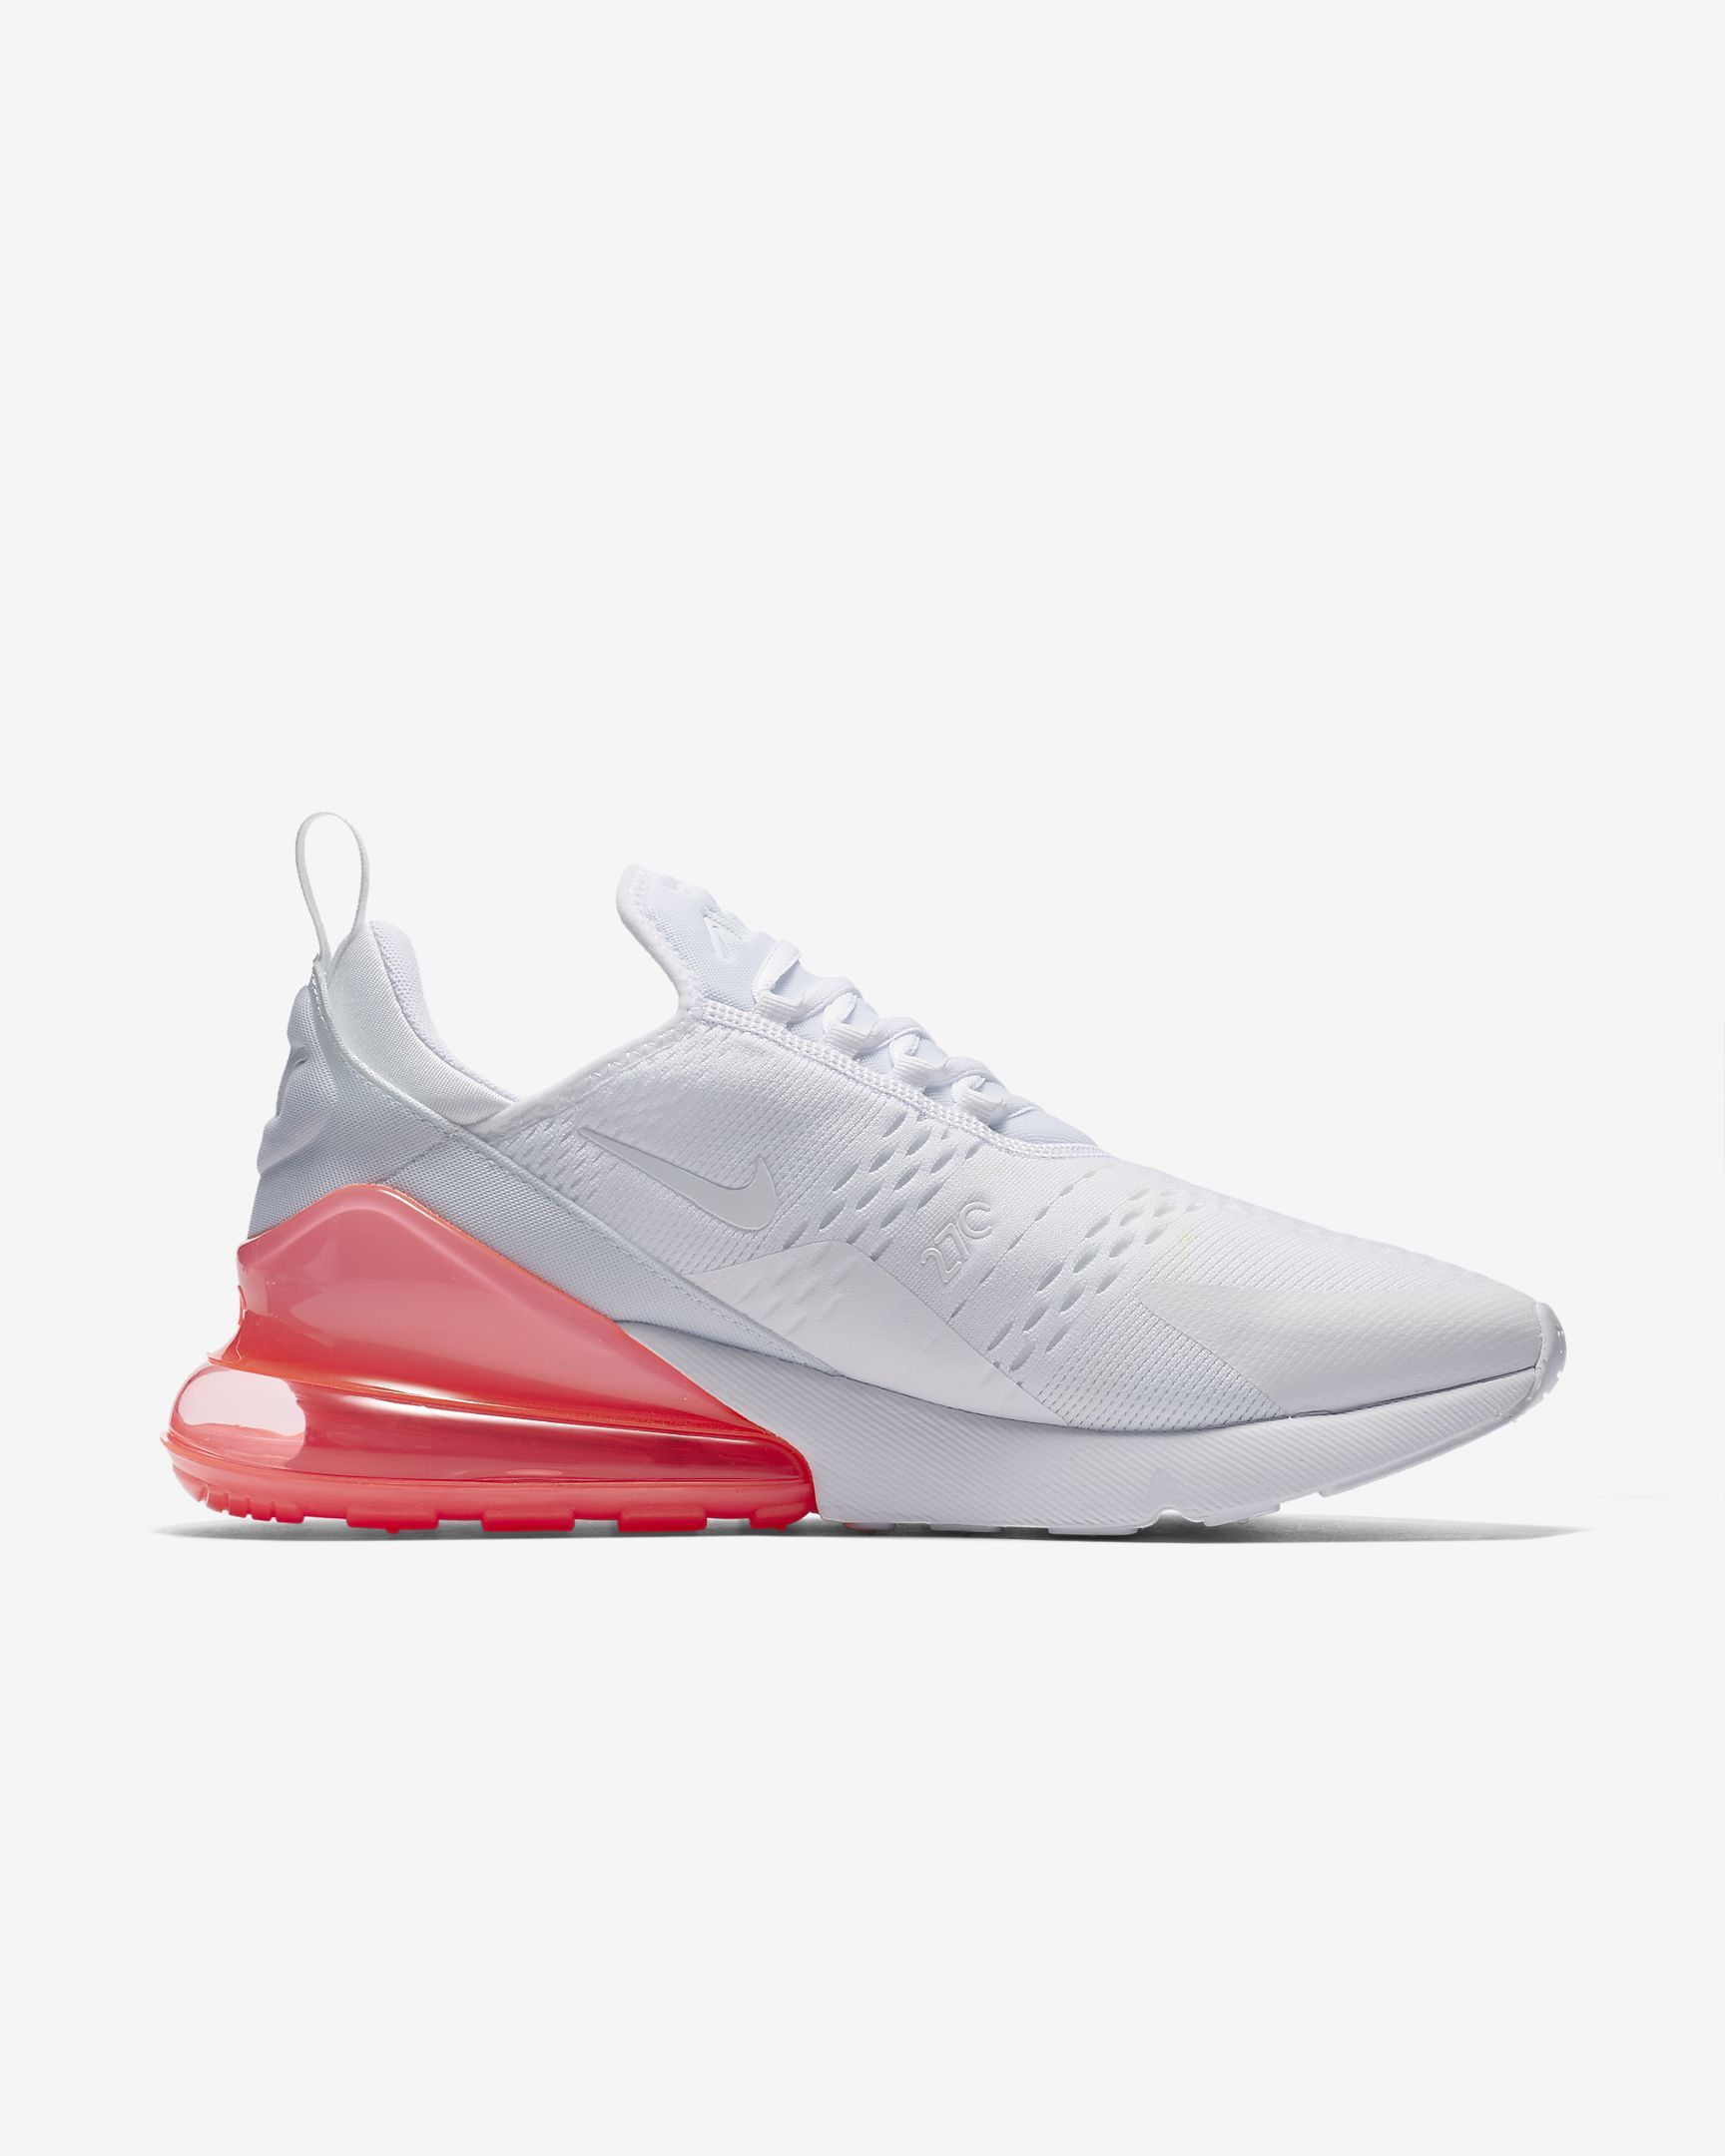 official photos 26289 169bb Sko Nike Air Max 270 för män